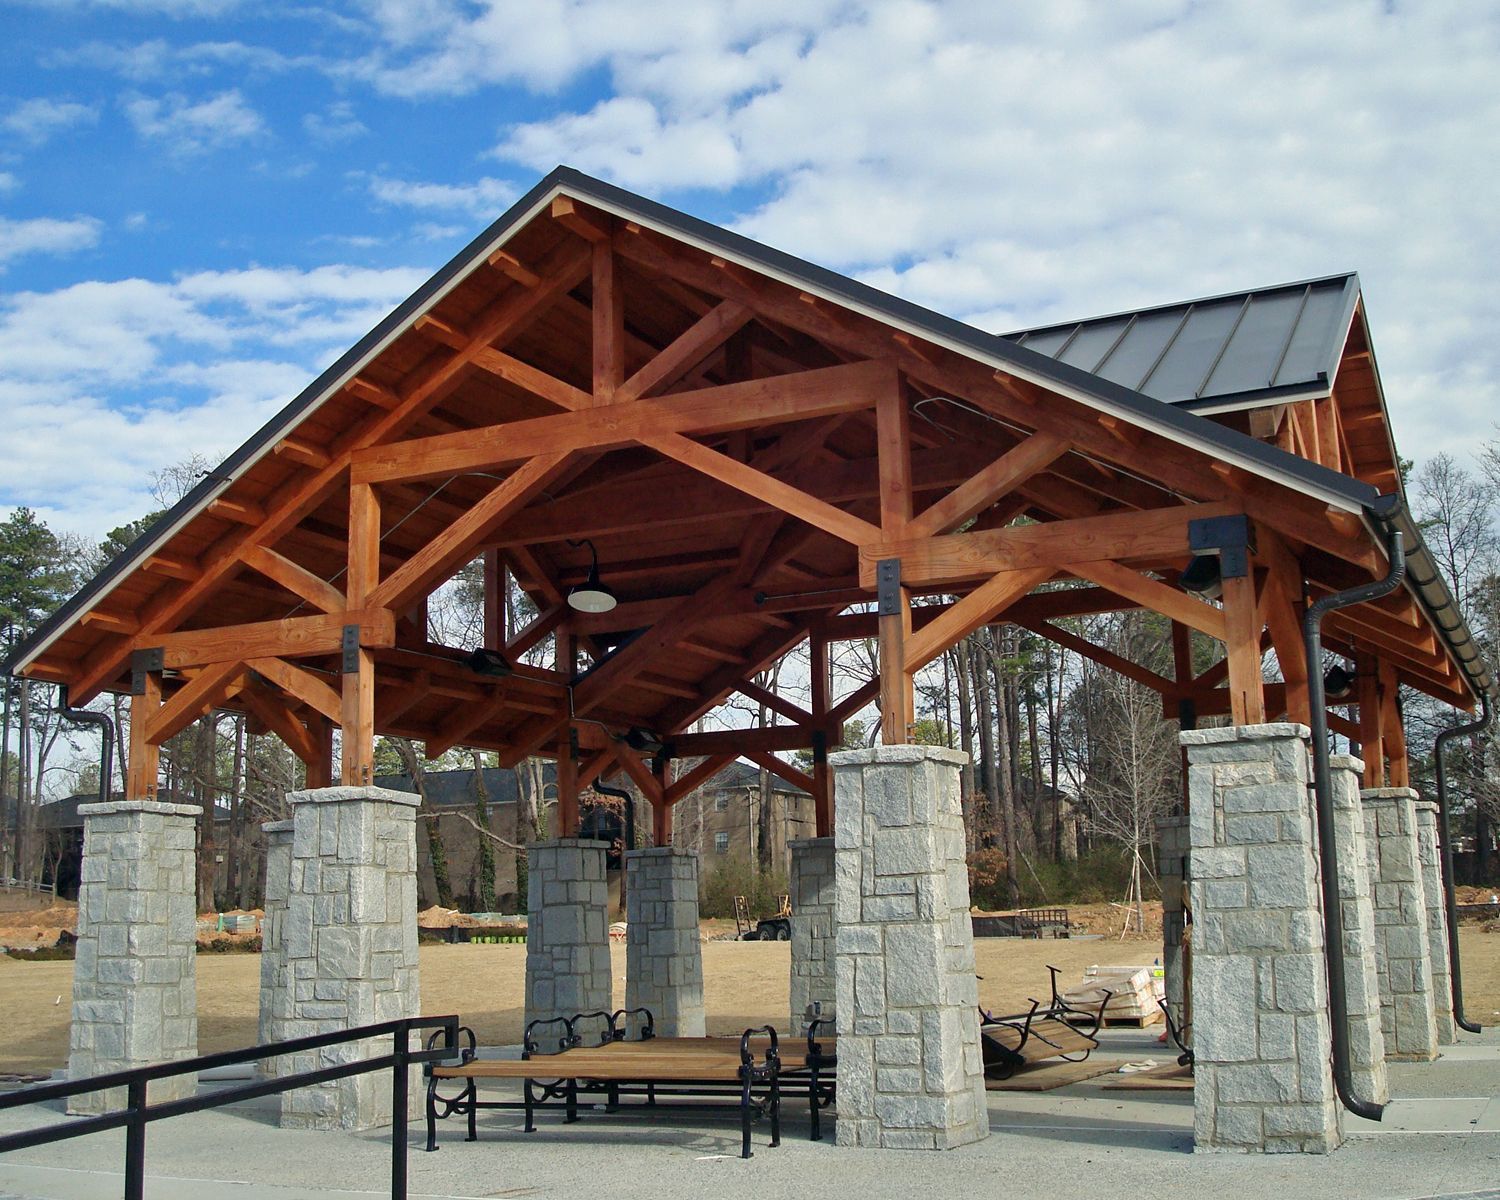 Timber Frame Pavilion Cedar Timbers And Trusses With